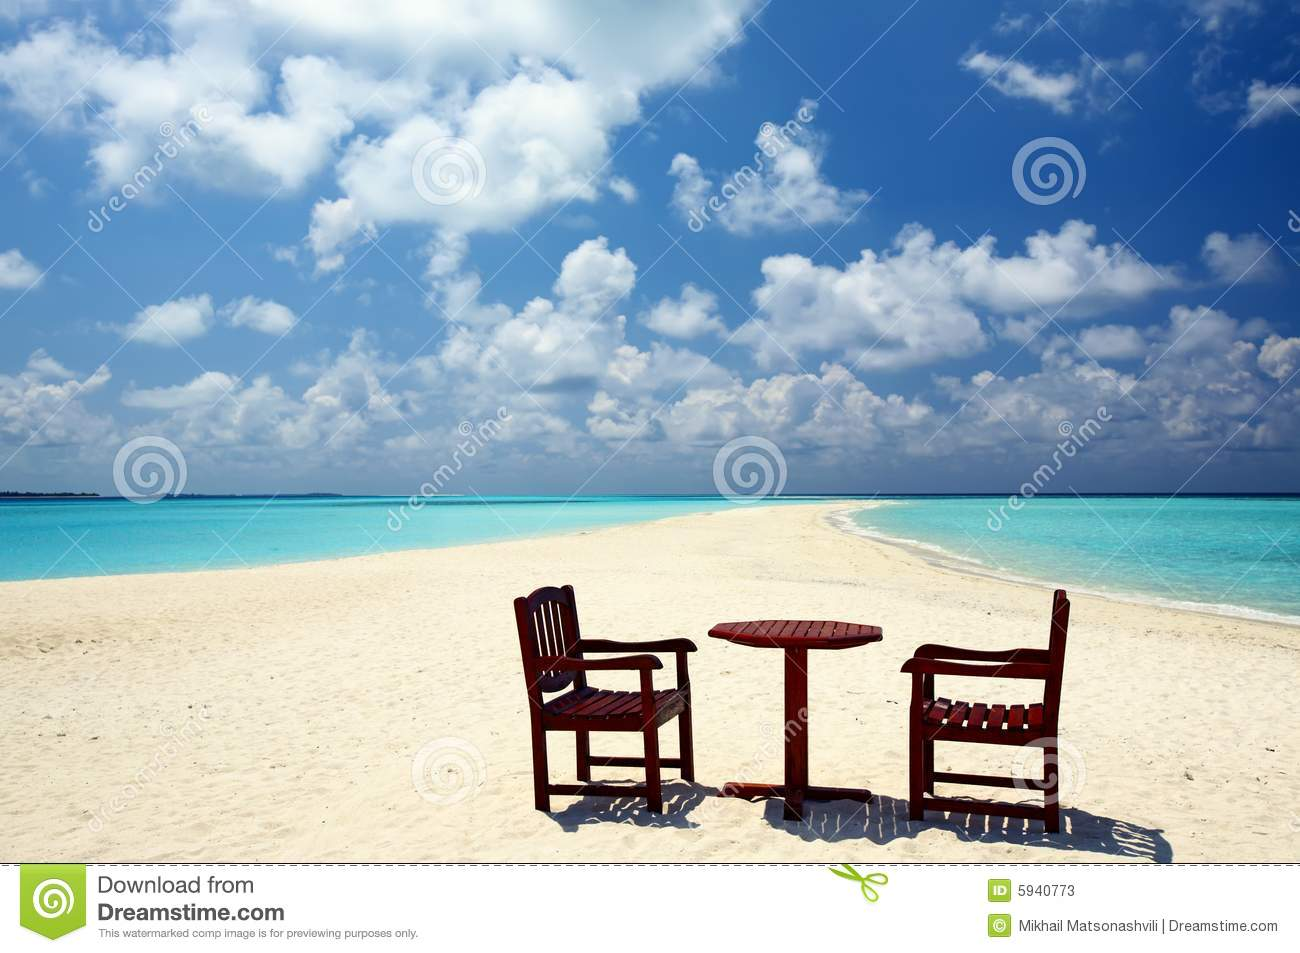 Two chairs and one table are on a beach